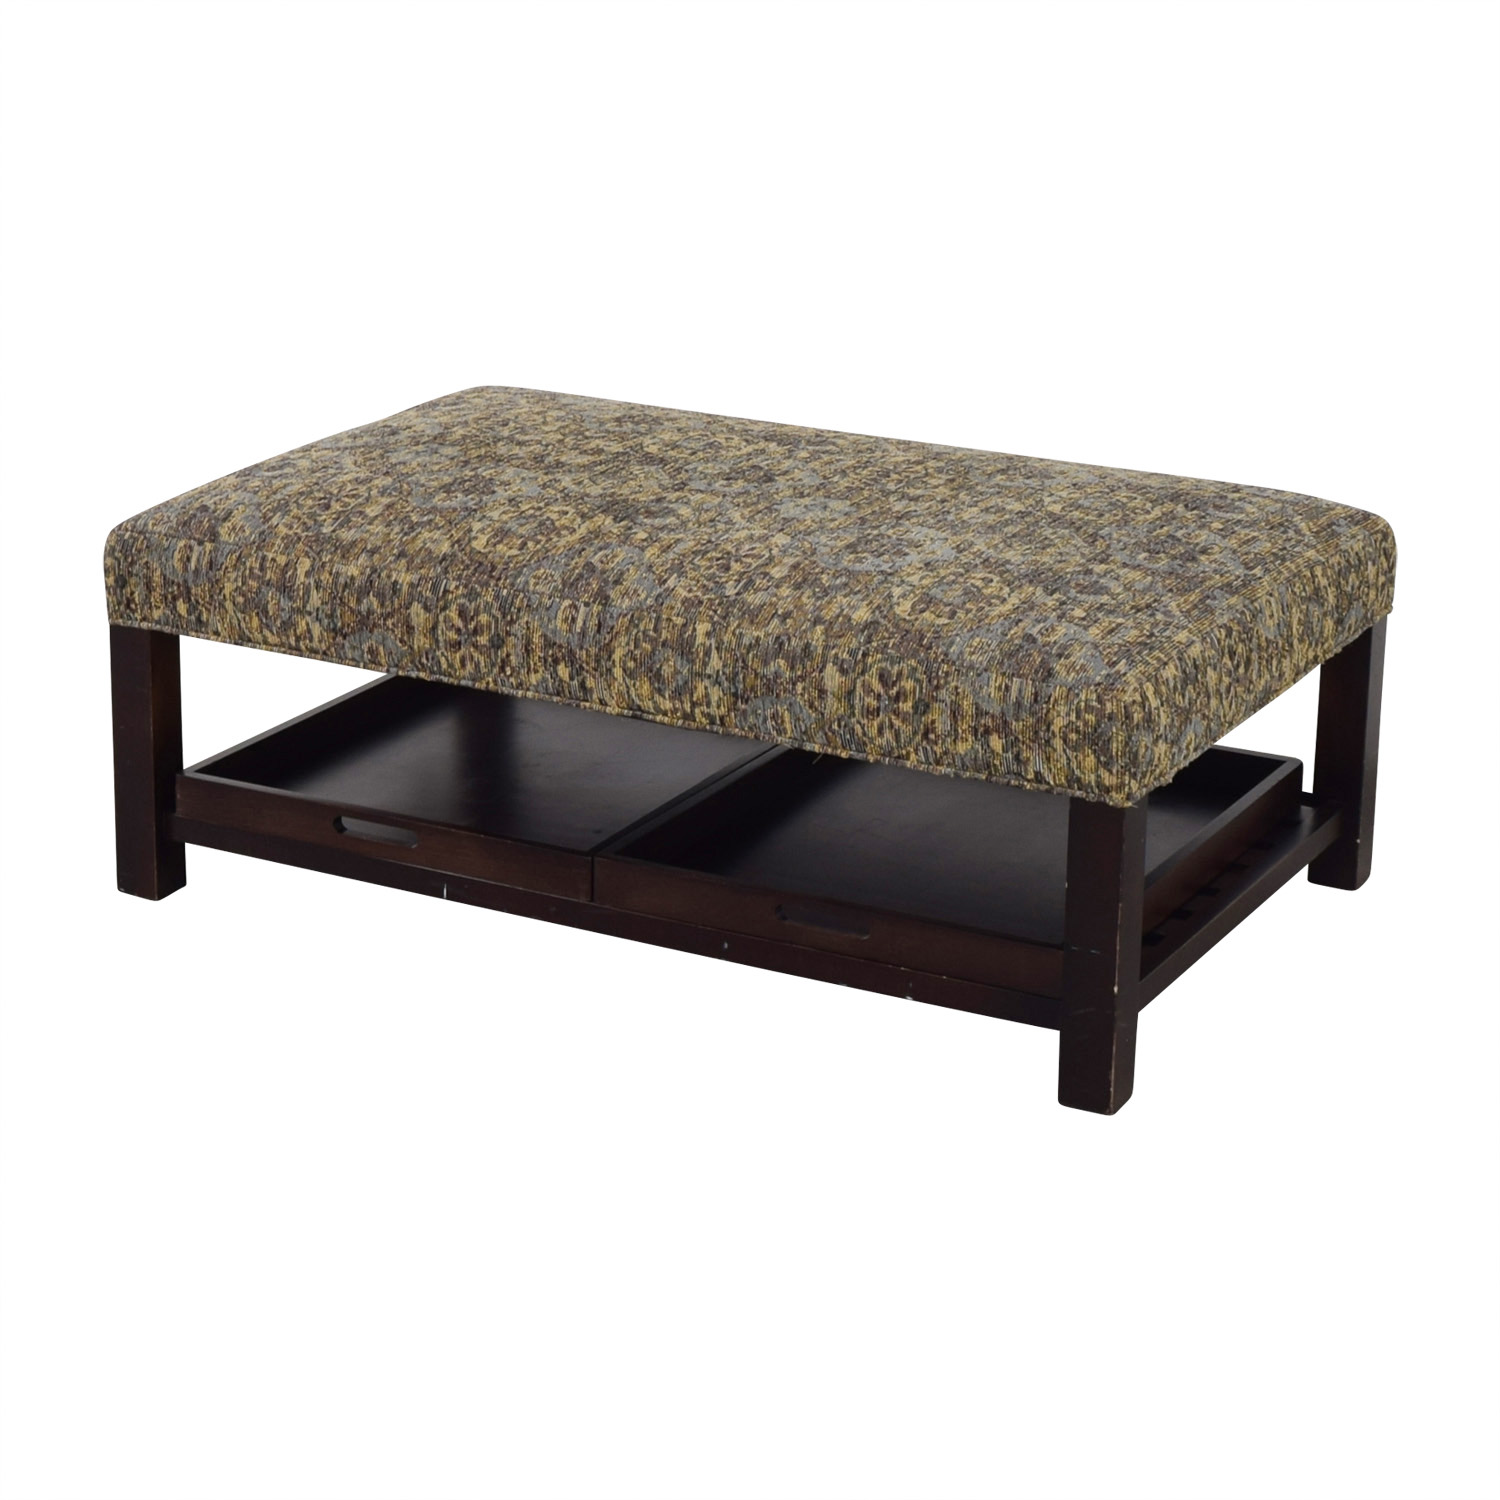 ... Arhaus Arhaus Multi-Colored Ottoman with Storage Trays discount ...  sc 1 st  Furnishare & 90% OFF - Arhaus Arhaus Multi-Colored Ottoman with Storage Trays ...